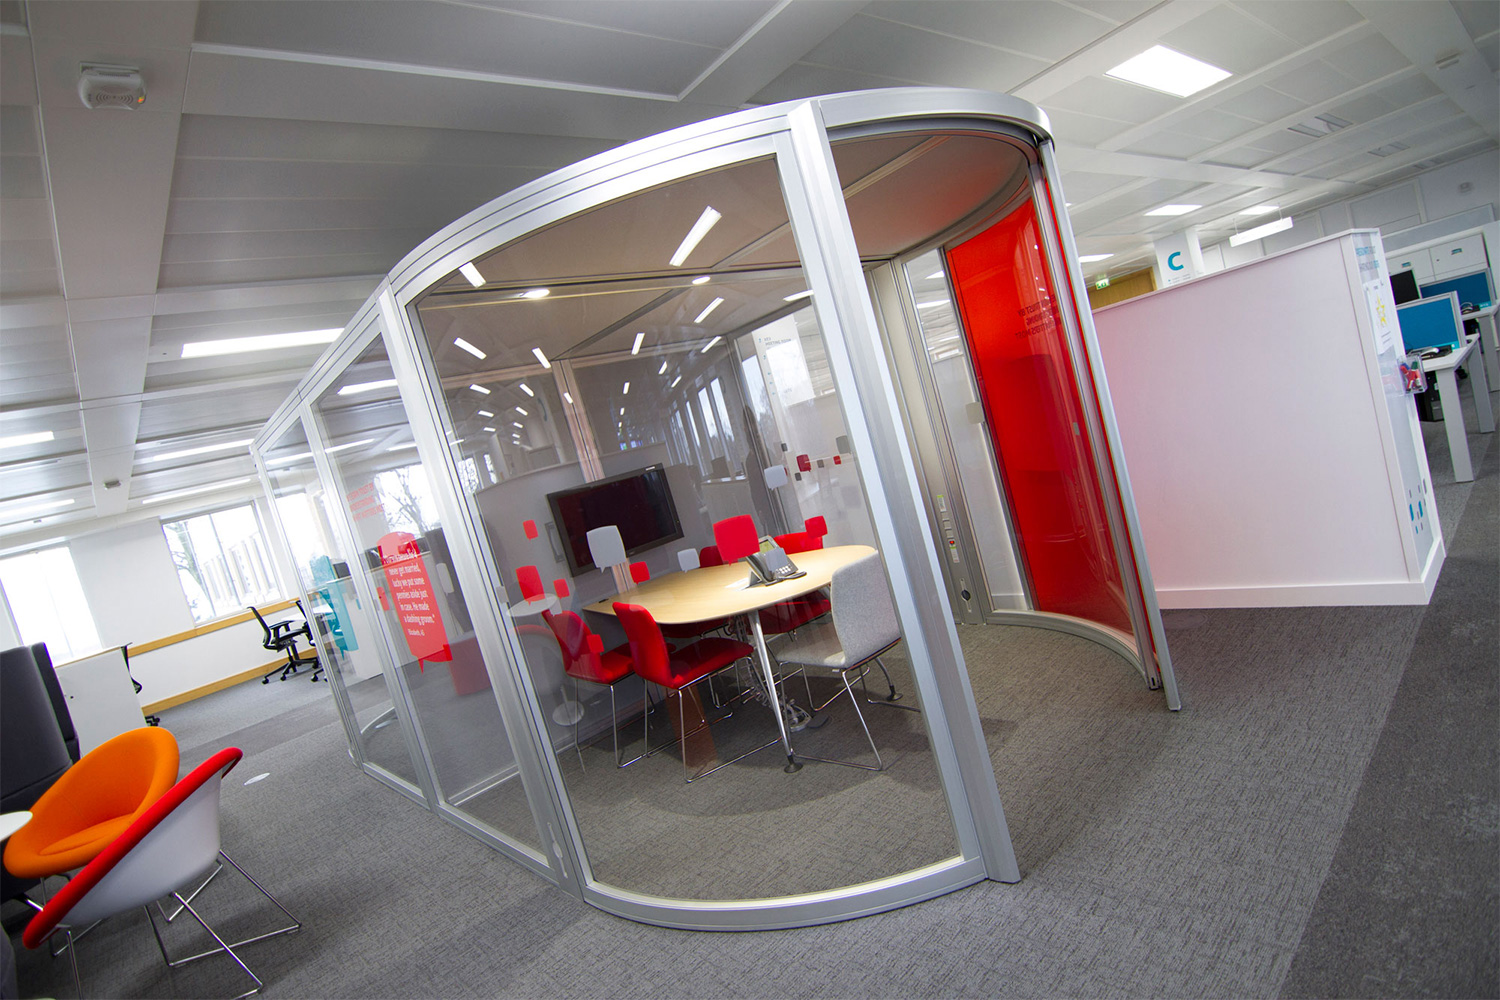 Meeting pod with red glazing manifestation